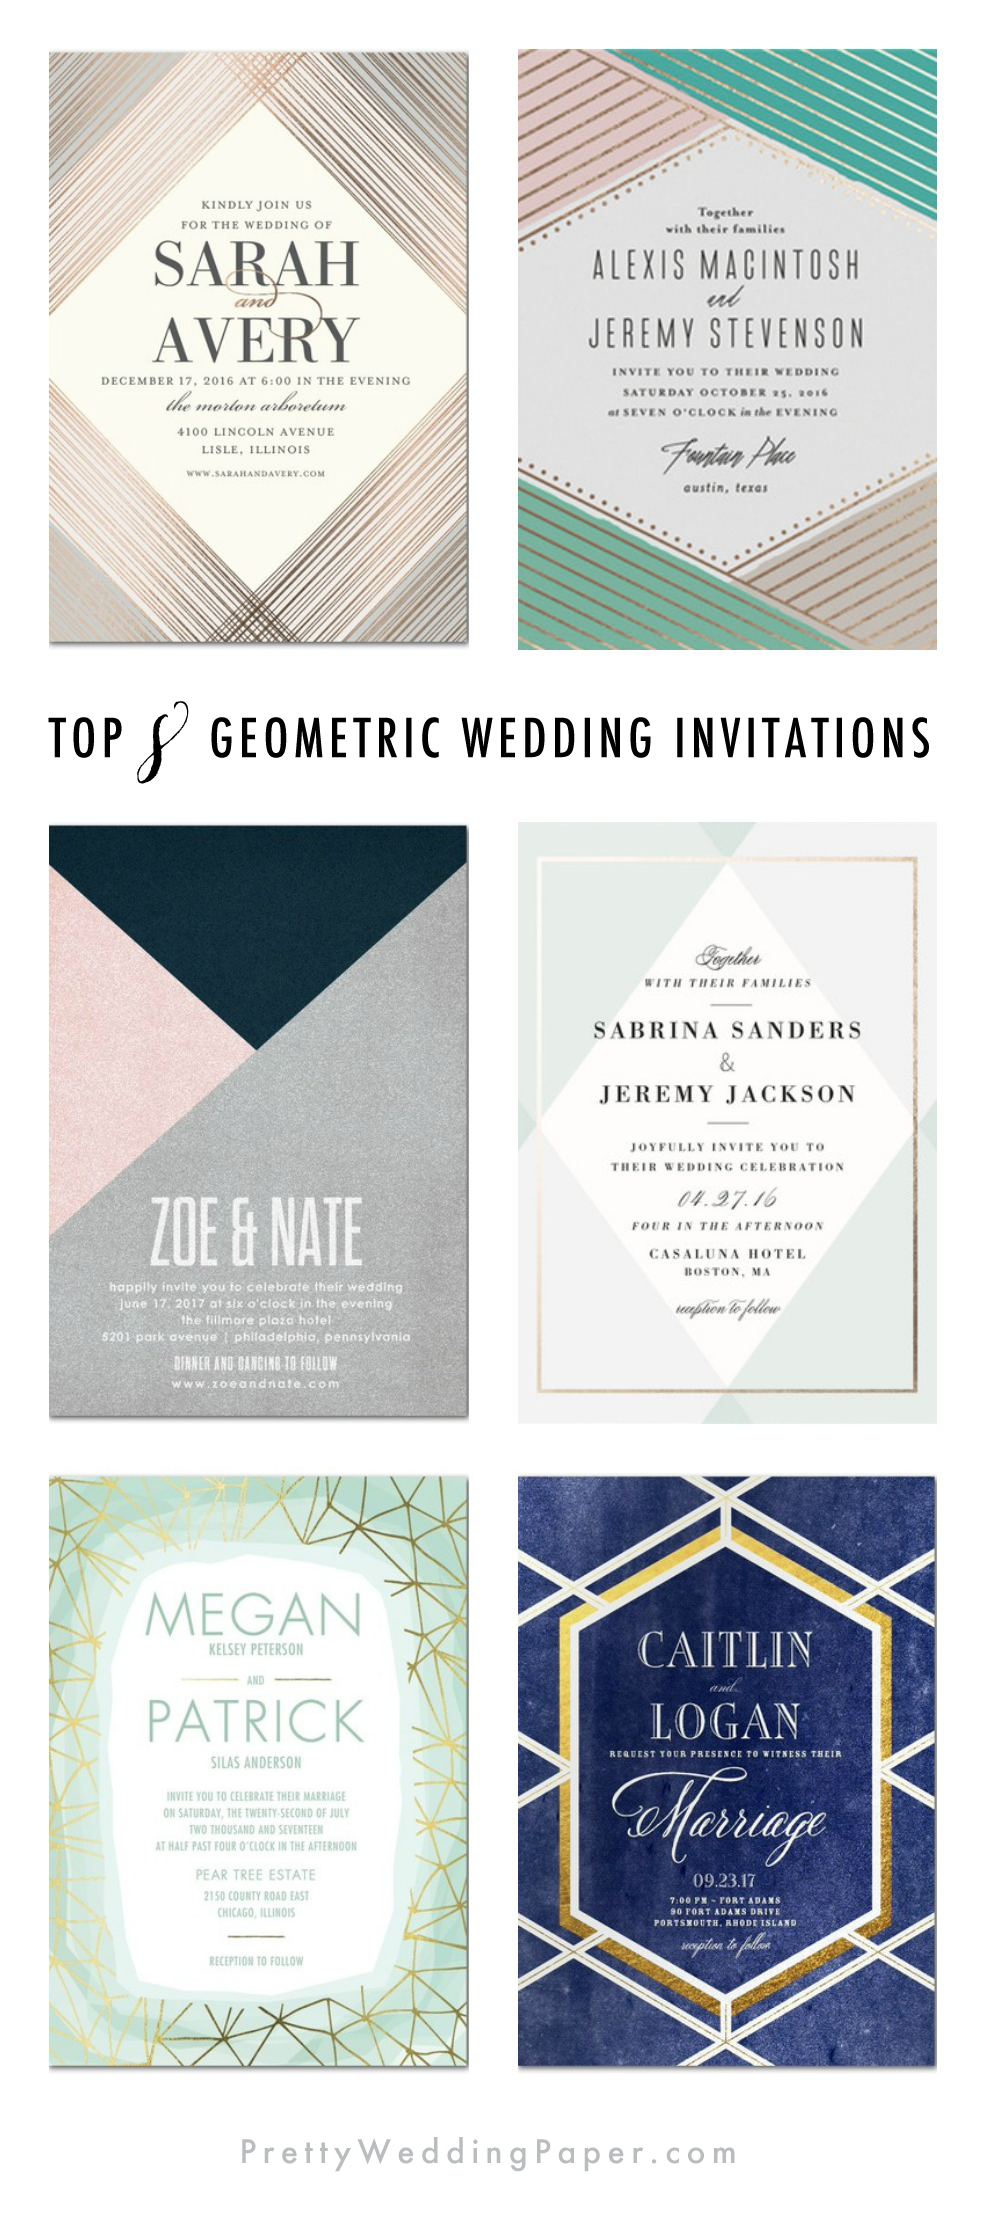 Top Eight Geometric Wedding Invitations. ♥ picked by prettyweddingpaper.com